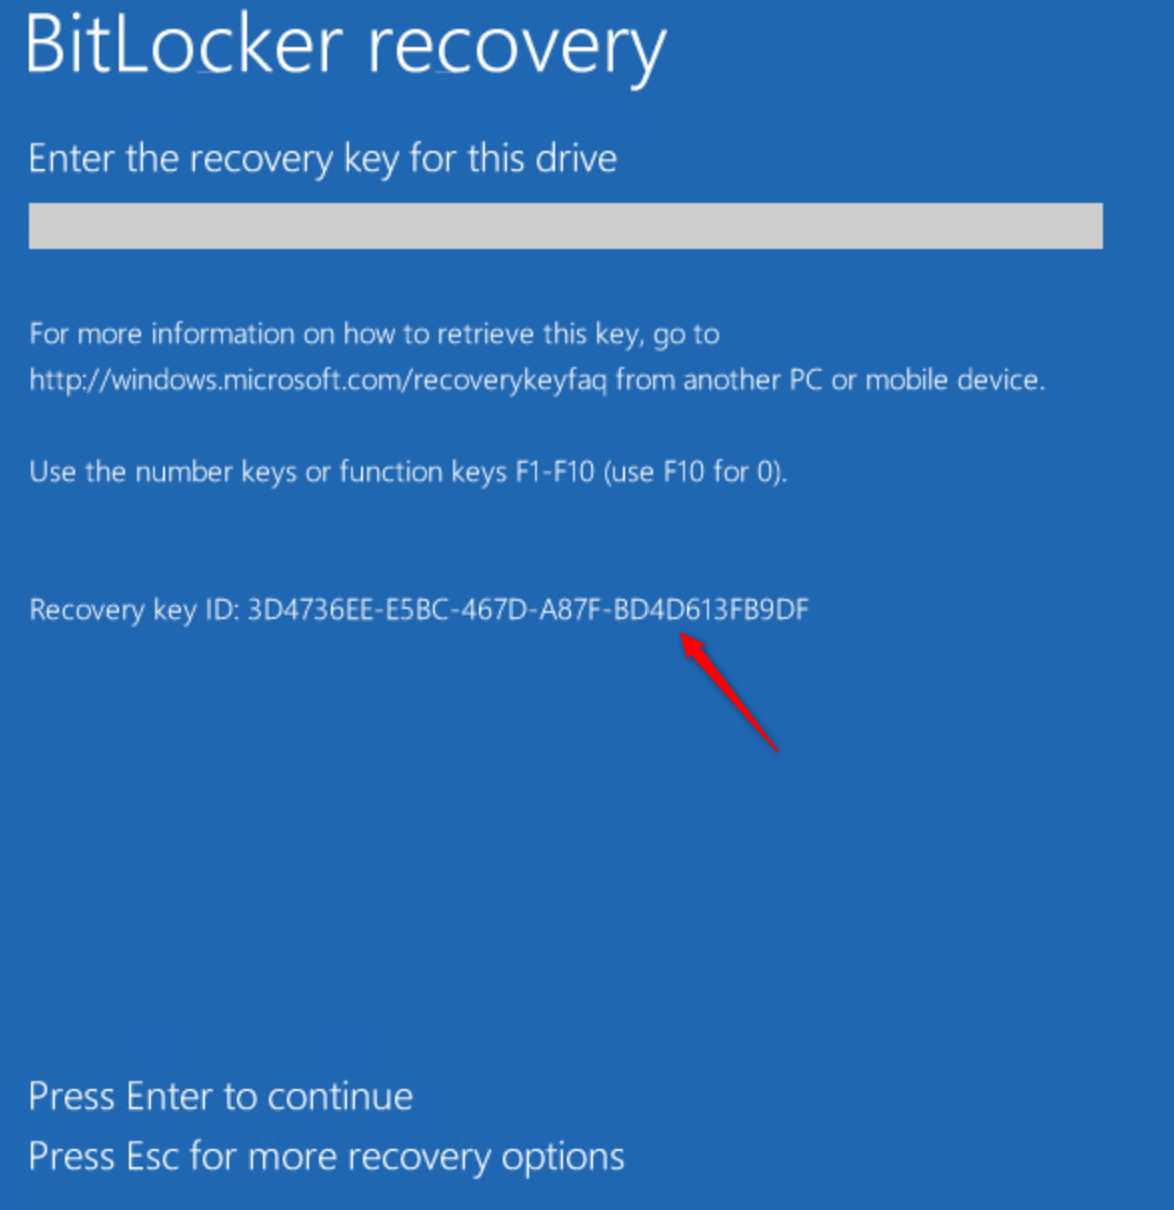 Secure your desktop with Bitlocker Recovery key ID